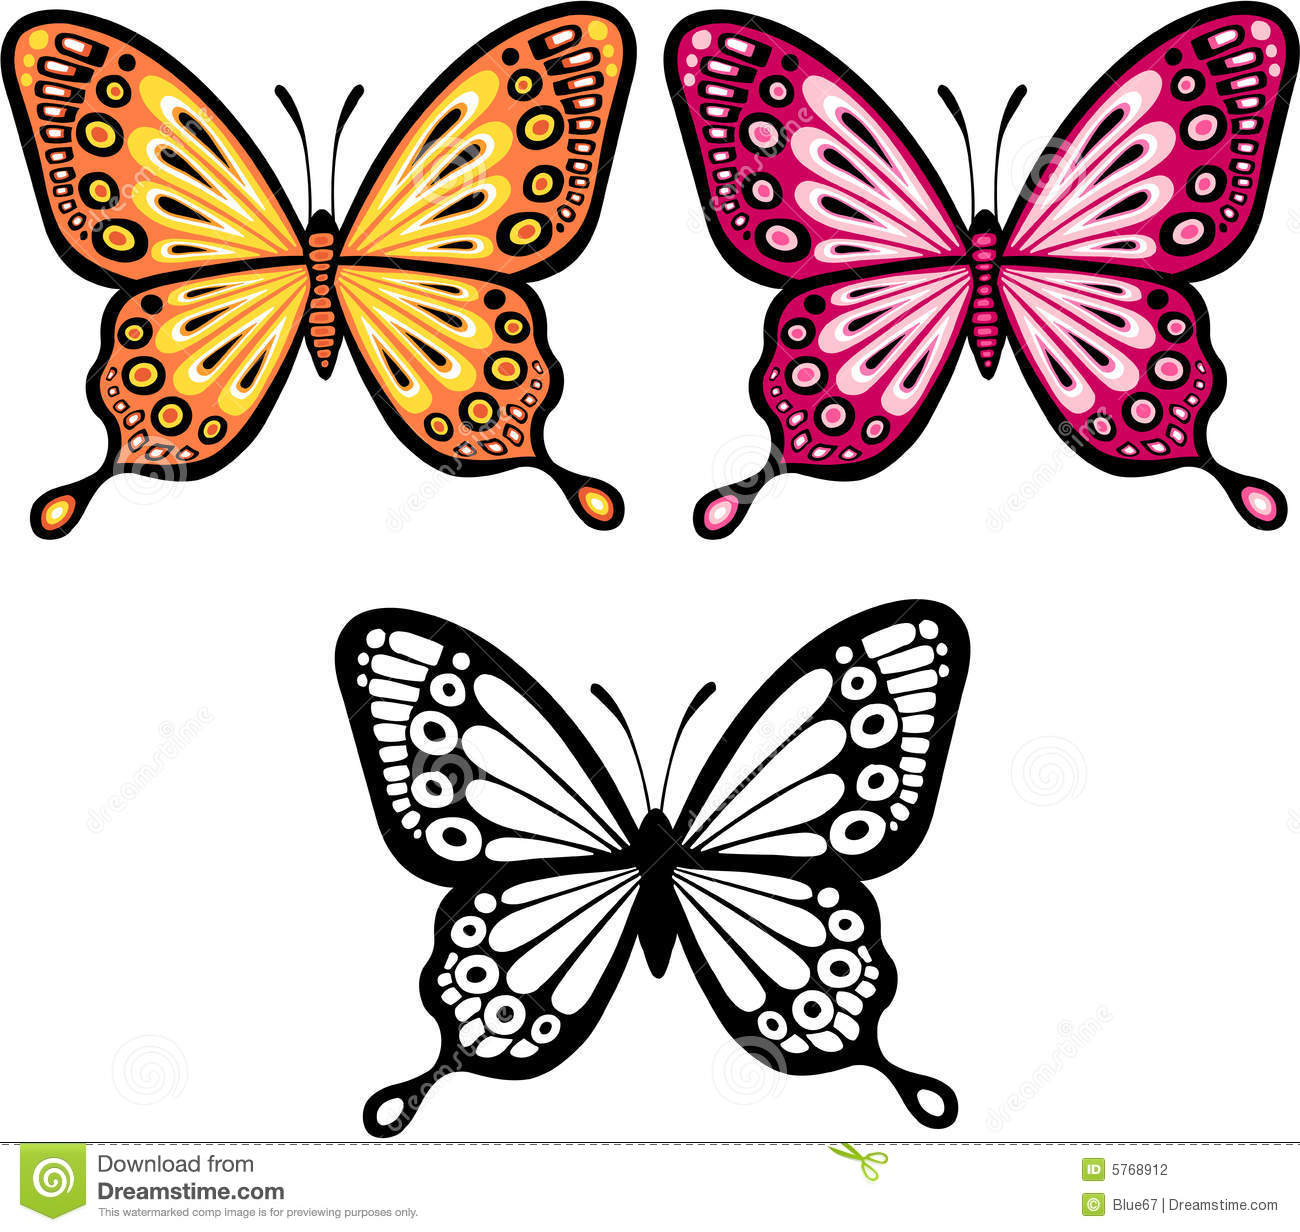 Butterfly Vector Illustration Stock Photography - Image: 5768912